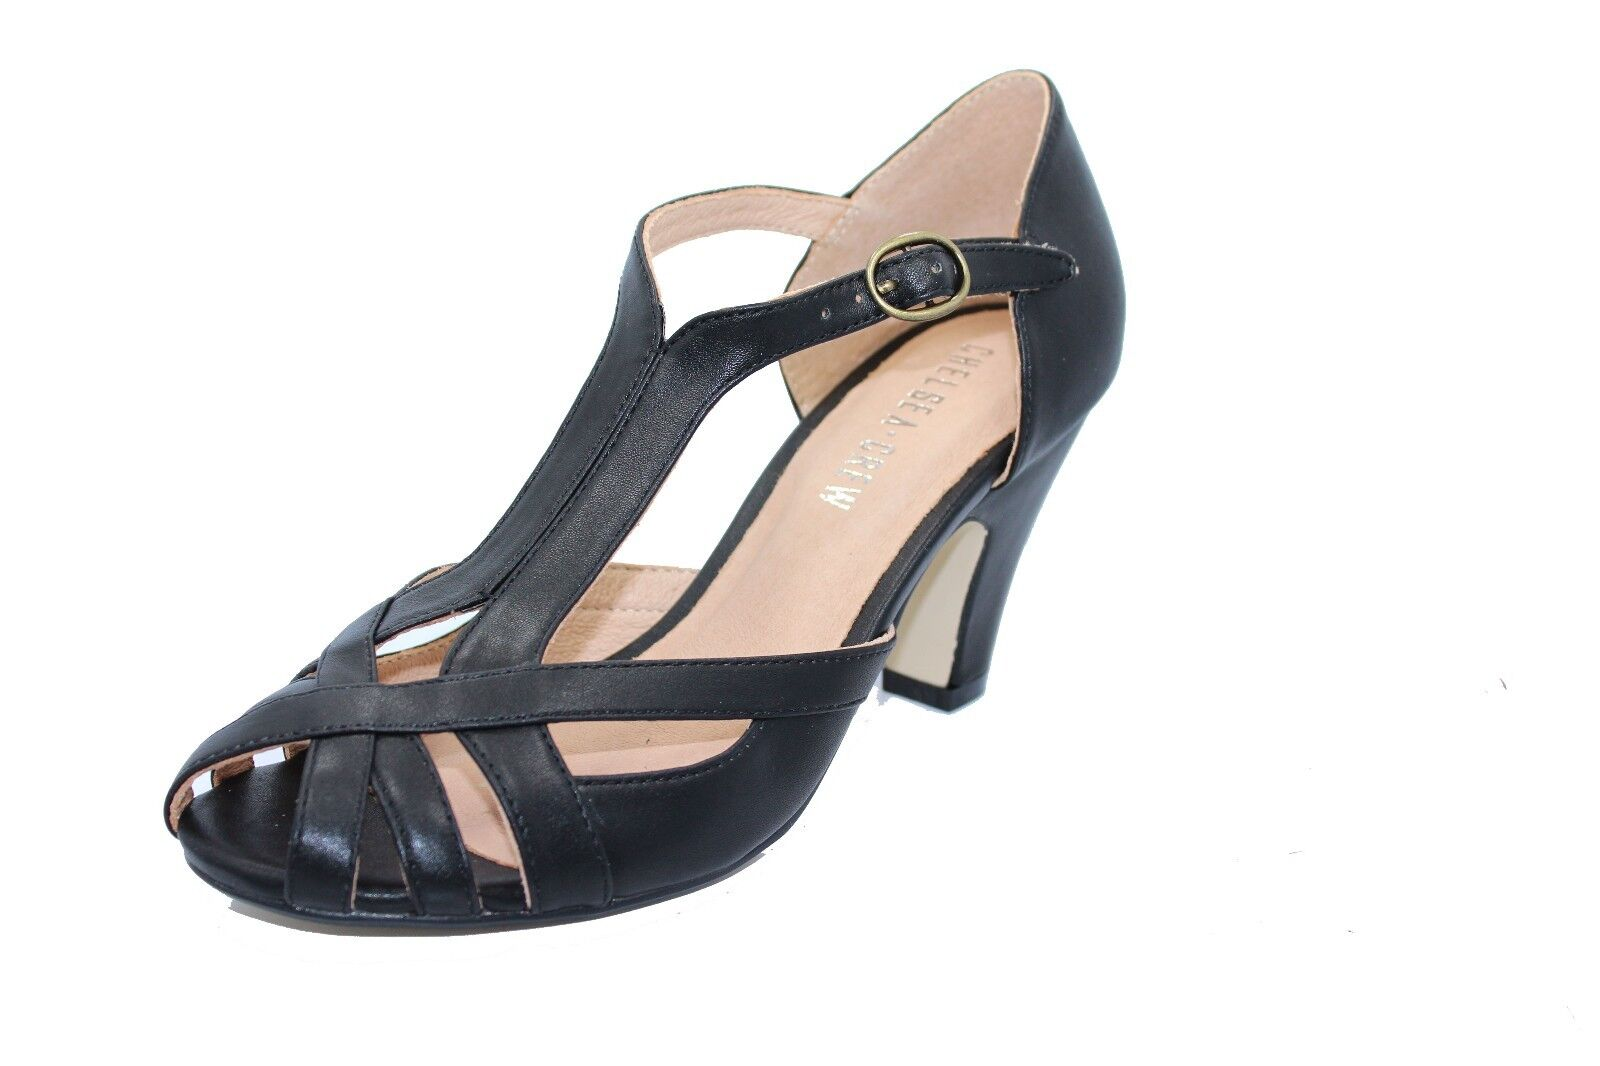 Chelsea Crew Carly Mid Heel Strappy Strappy Strappy Heels c25658